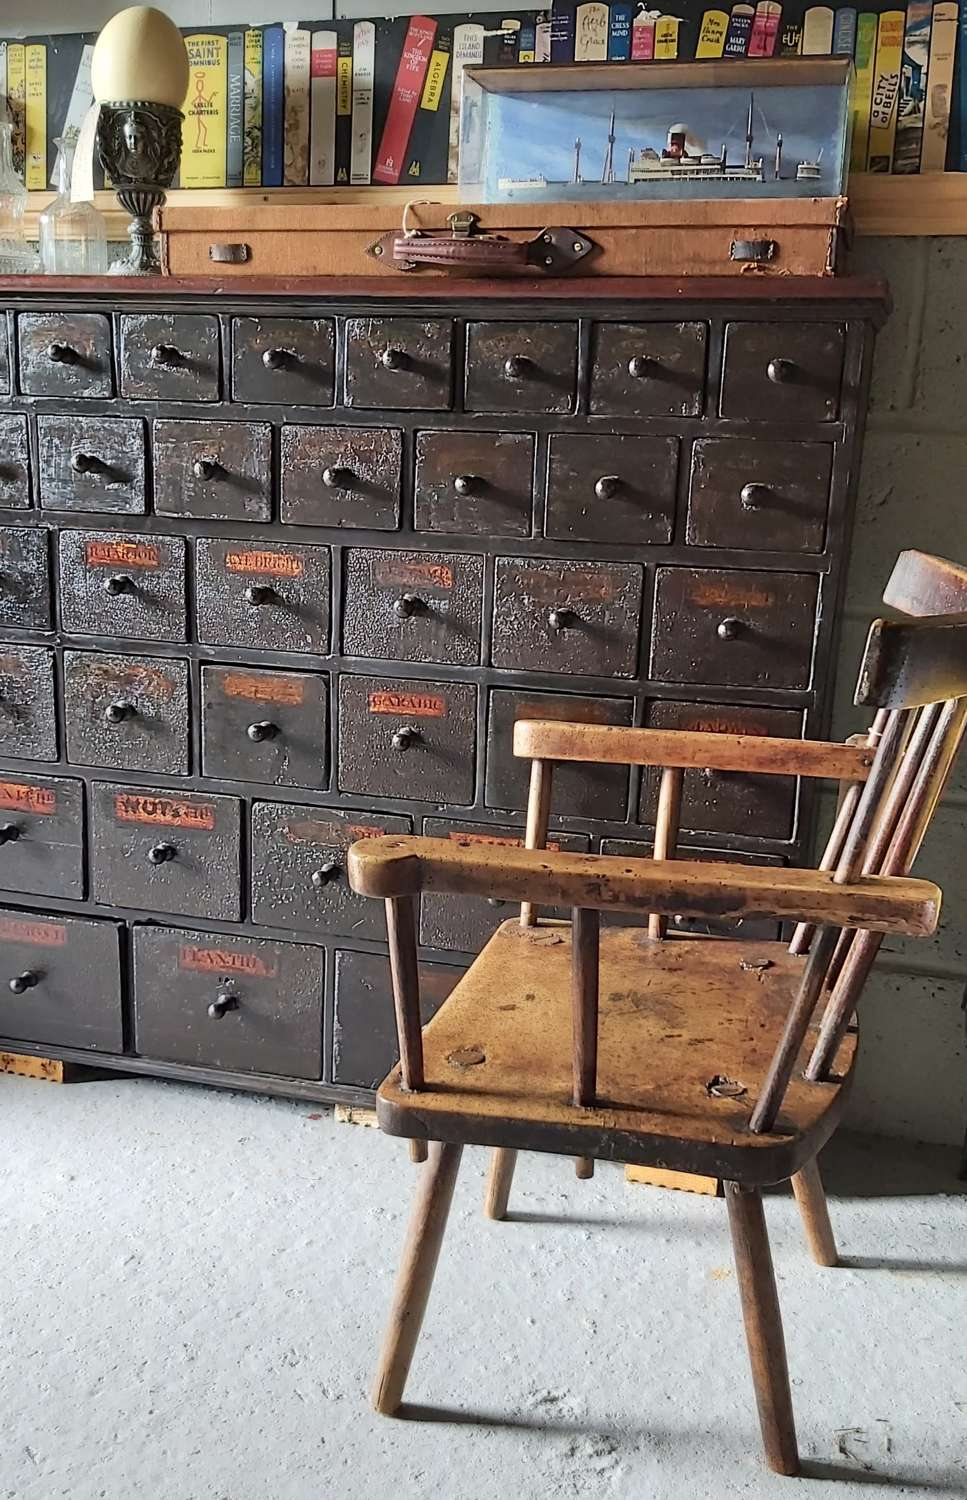 Early 19th century Apothecary drawers